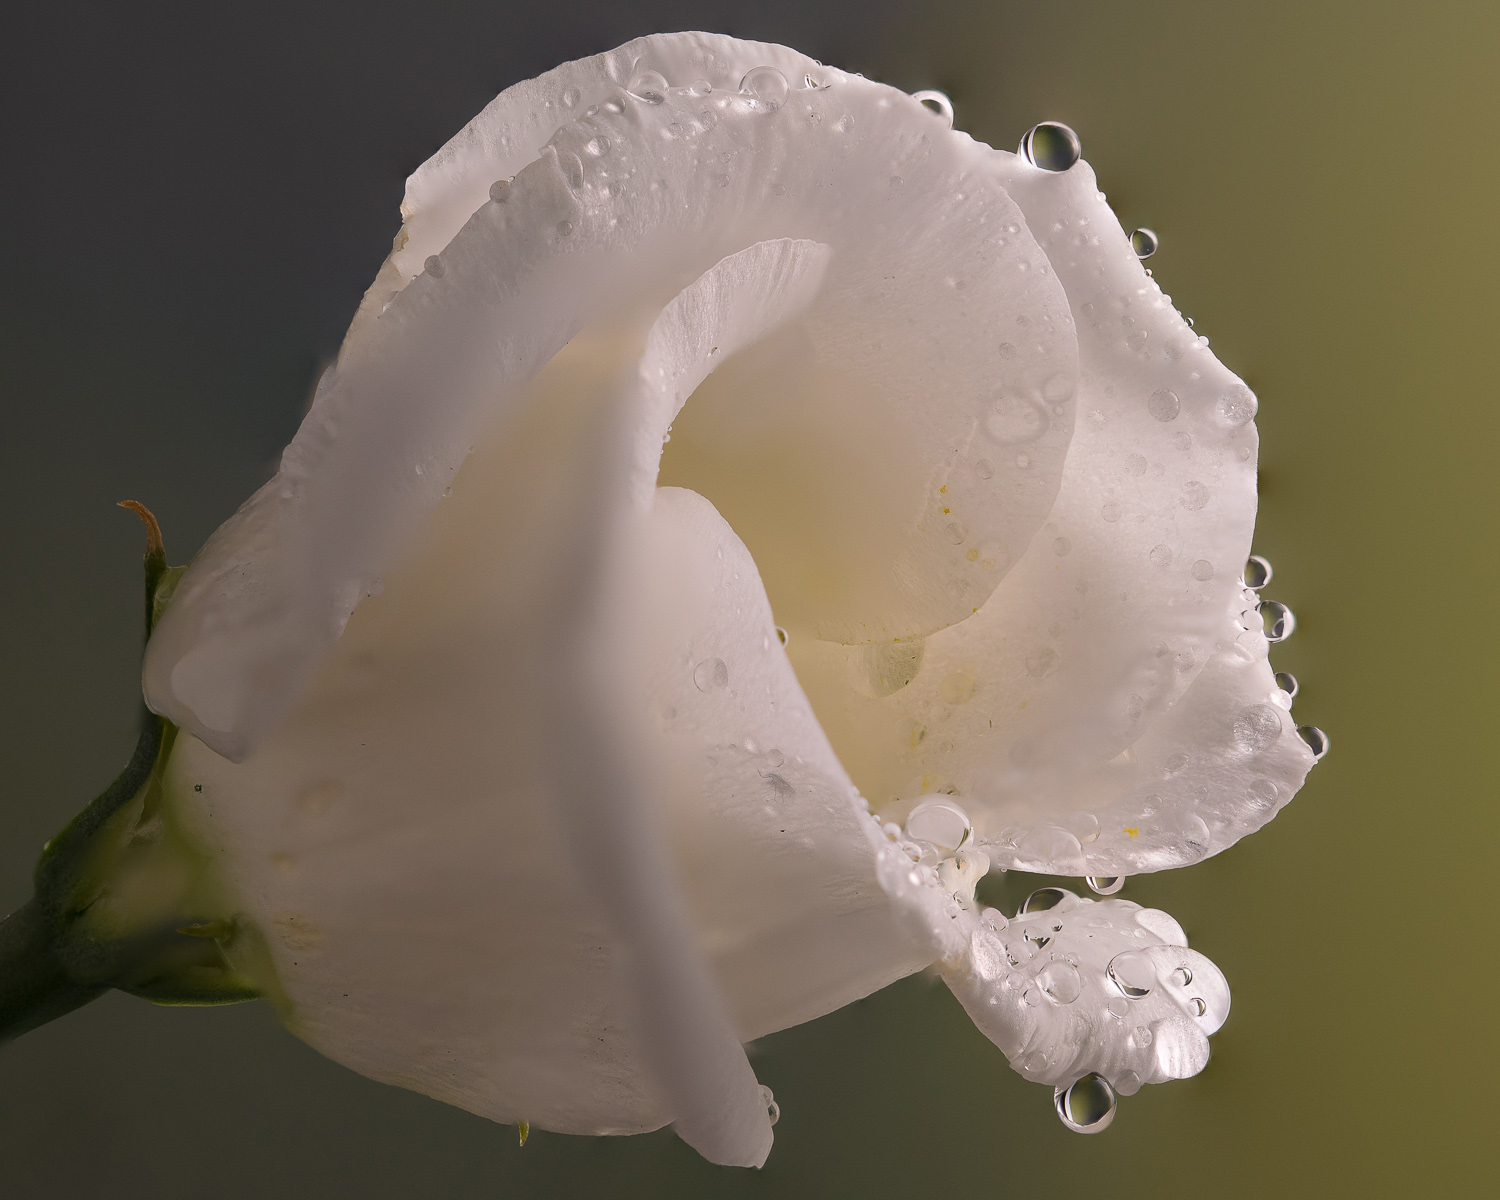 Some obvious blurring at edges of flower and the image is far softer and the loss of detail in the petals is easy to see.